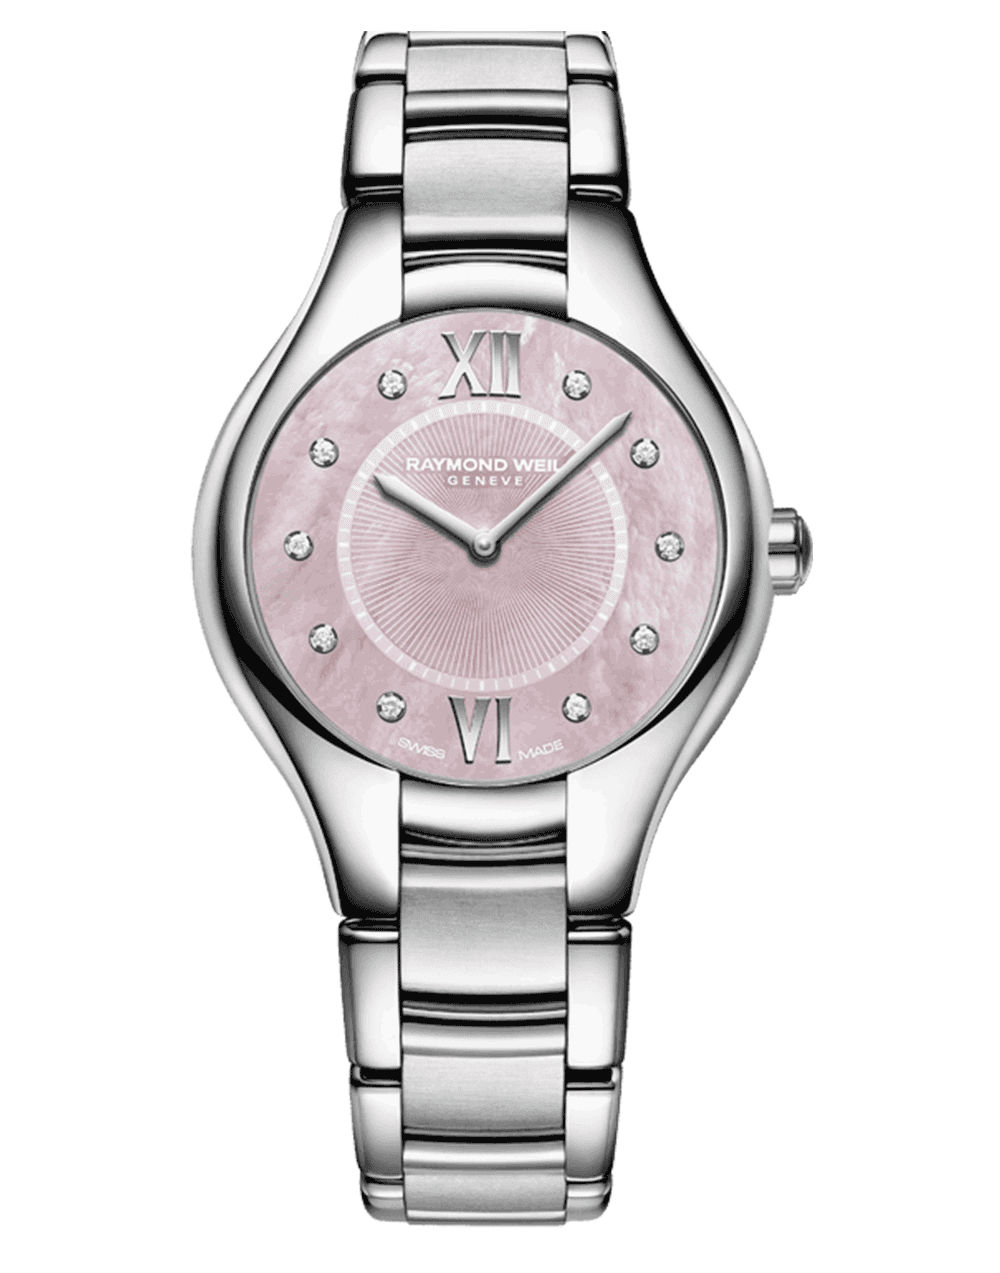 RAYMOND WEIL Geneve Stainless Steel Pink Dial Ladies Luxury Watch